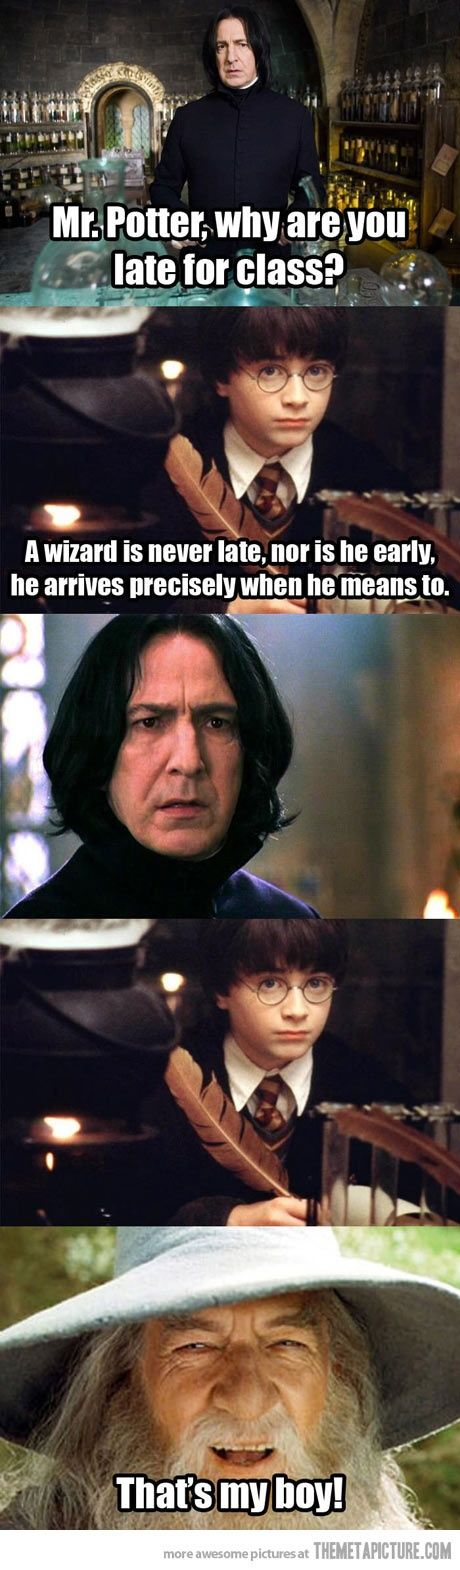 Harry Potter / Lord of The Rings mash. I have not seen Lord of the rings but I thought this was pretty funny!